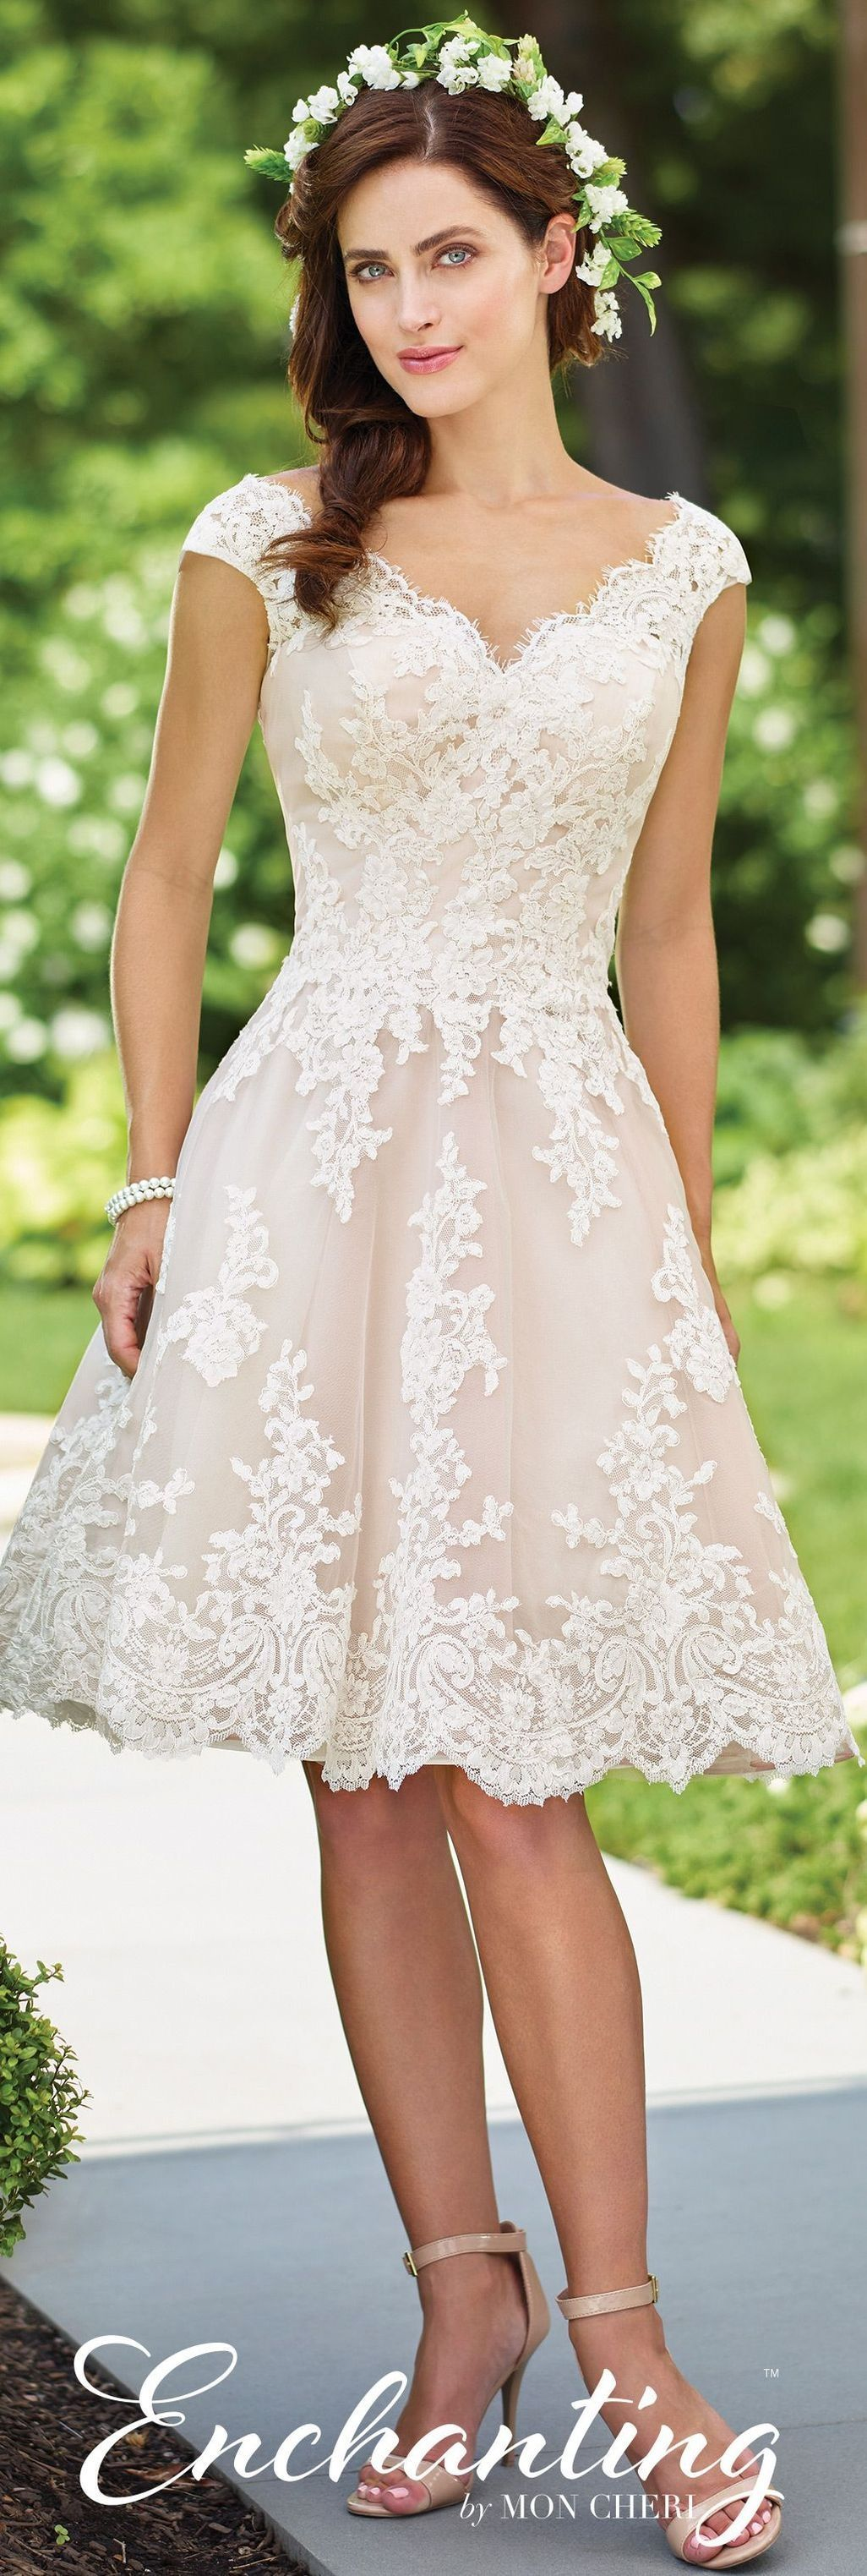 Hochzeit Sprüche Kurz Cool 45 Cute Lace Short Bridesmaid Dresses Trends Ideas